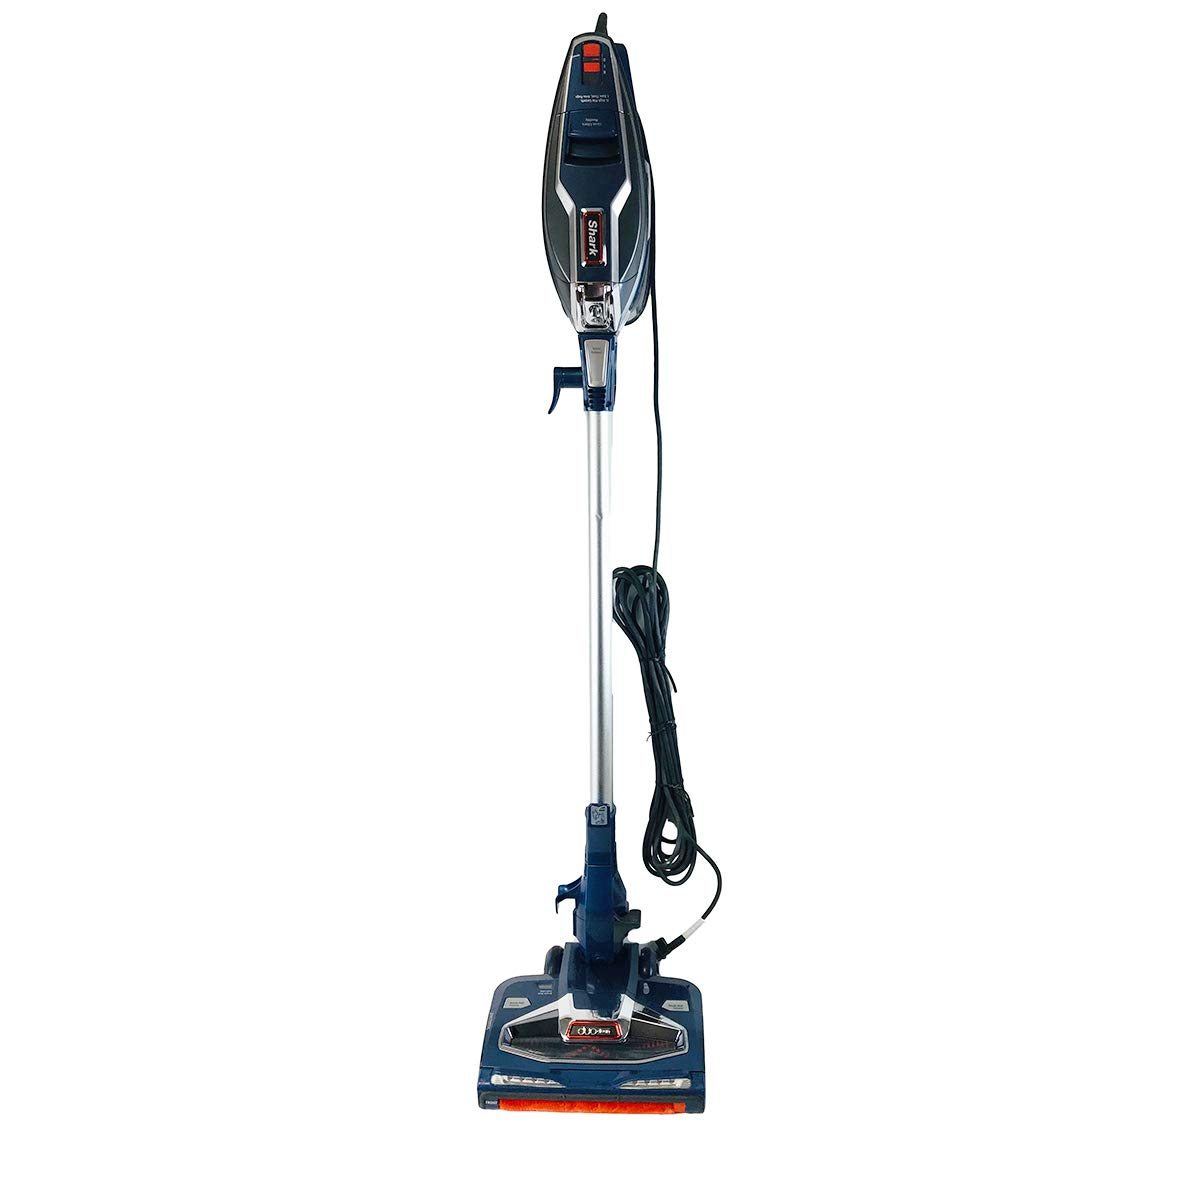 Shark Rocket with DuoClean Technology Ultra-Light Corded Stick Vacuum Cleaner HV384QBL Upholstery Tool and Motorized Floor Nozzle for Bare Floor, Rug and High Pile Carpets HV384Q (Renewed) (Blue)